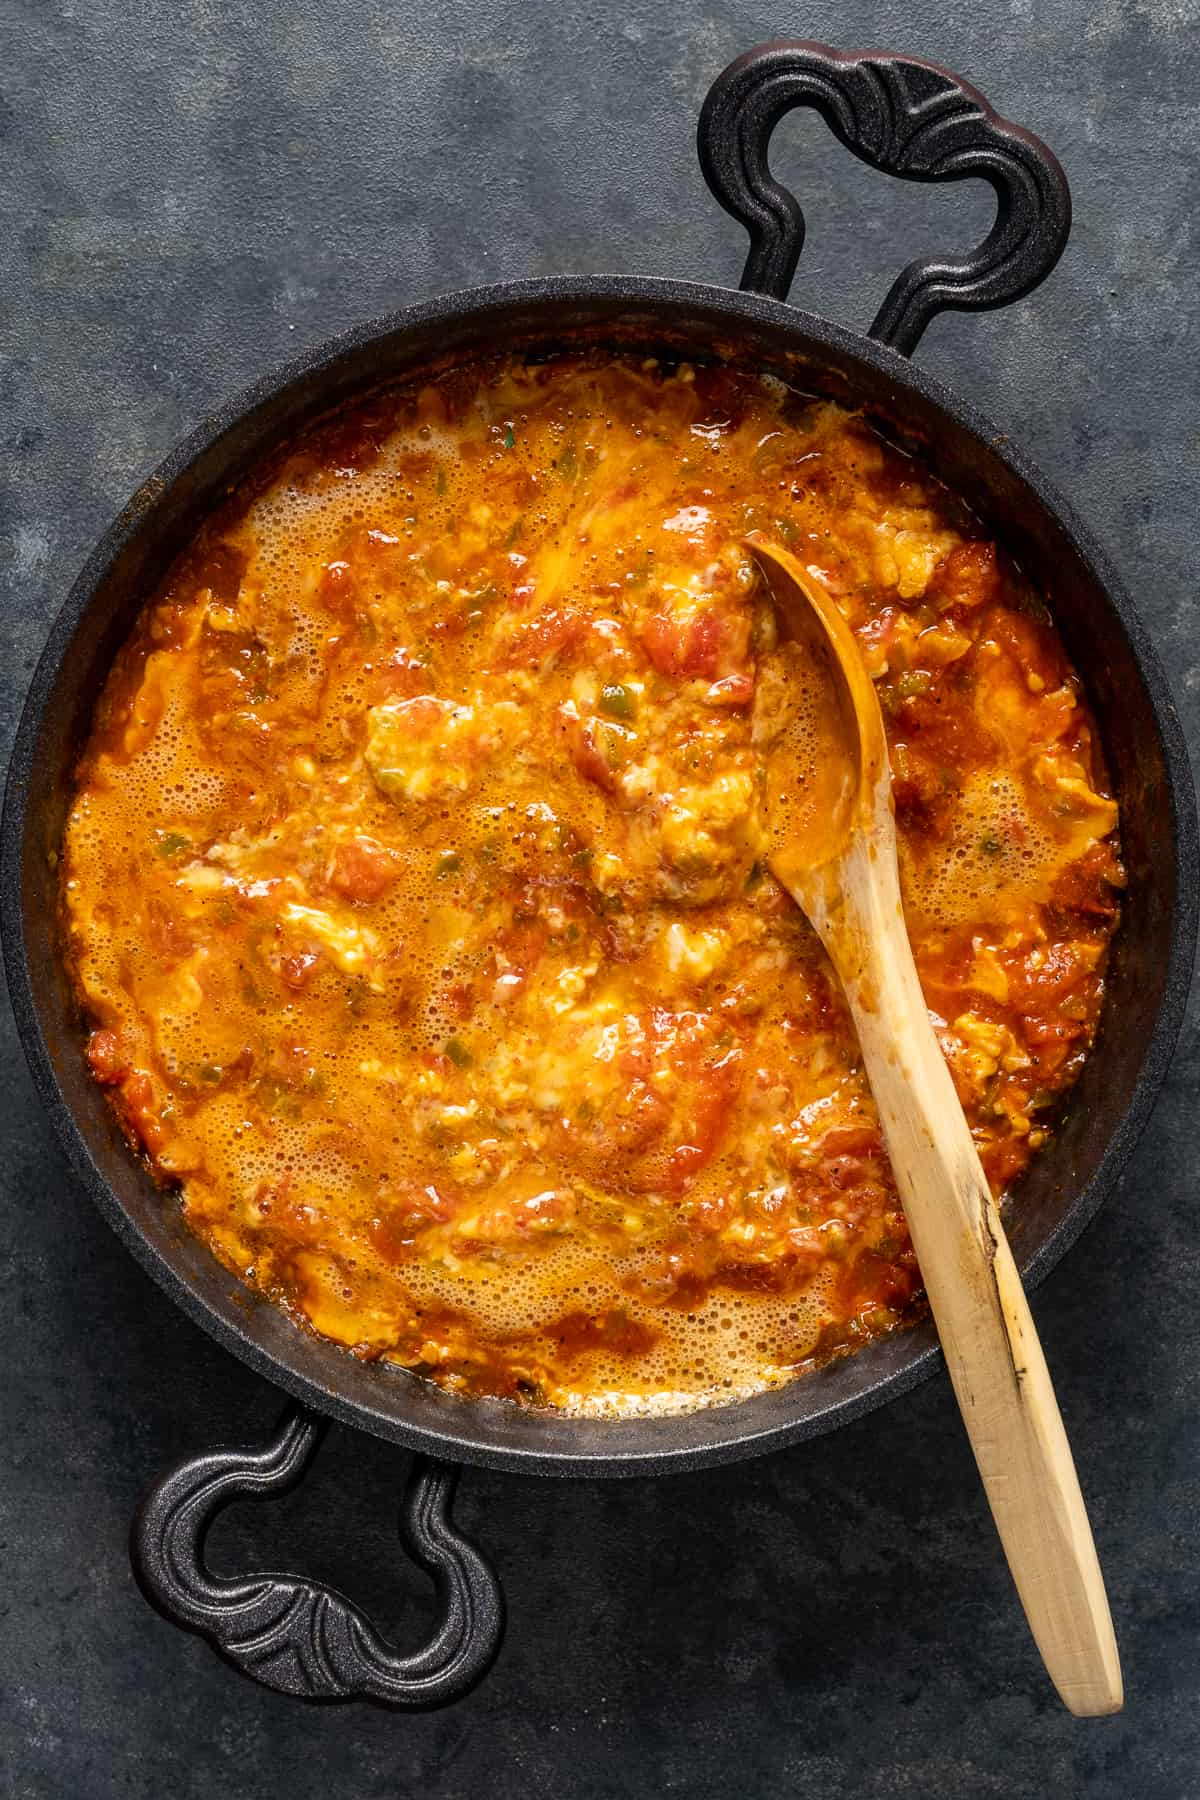 Beaten eggs added into cooking tomatoes and green peppers.